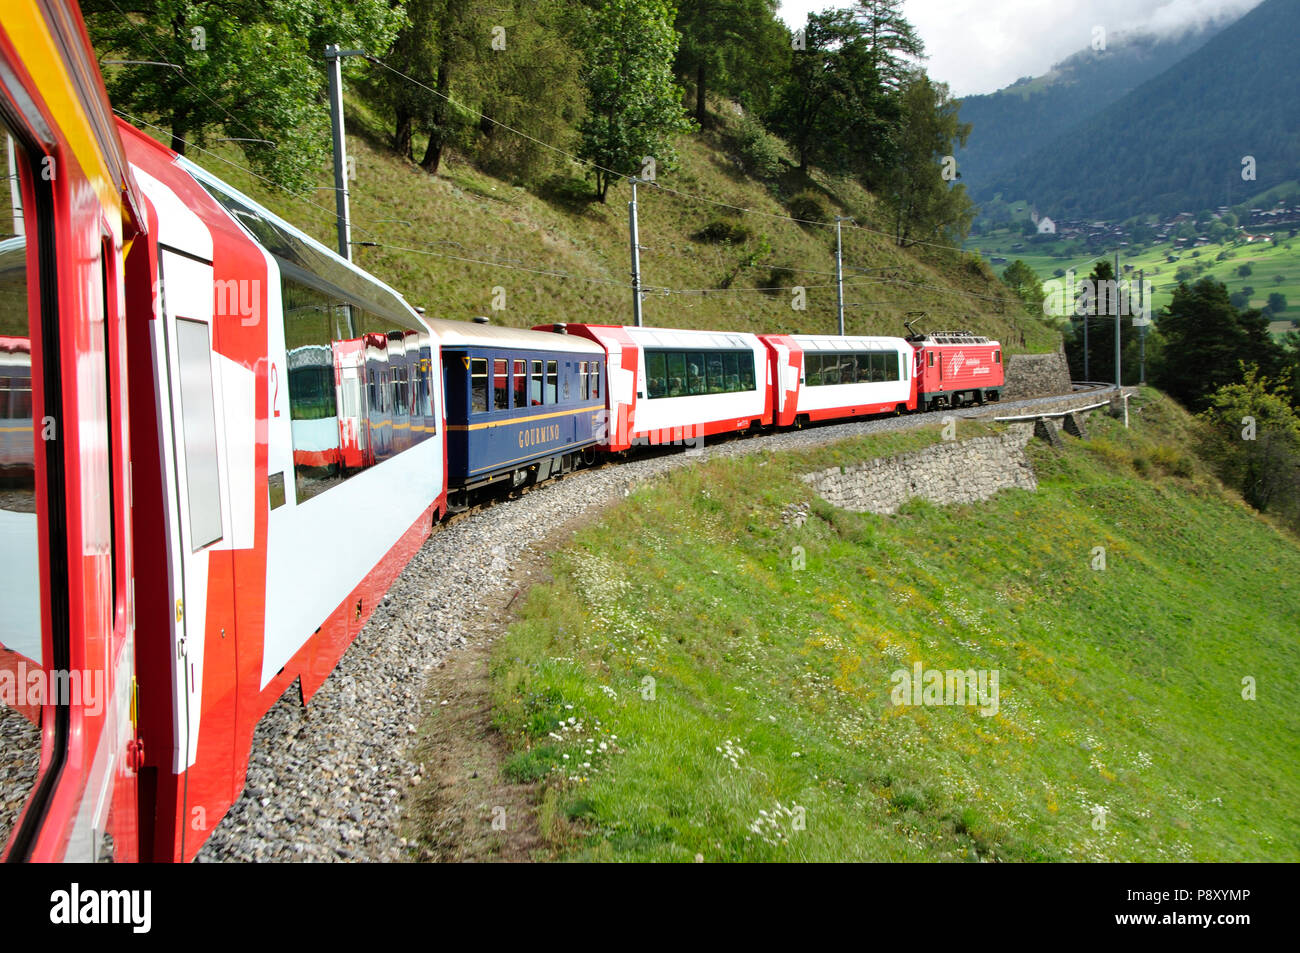 The glacier Express train is driving across the swiss alps and through the Unesco World heritage from Zermatt to St. Moritz - Stock Image